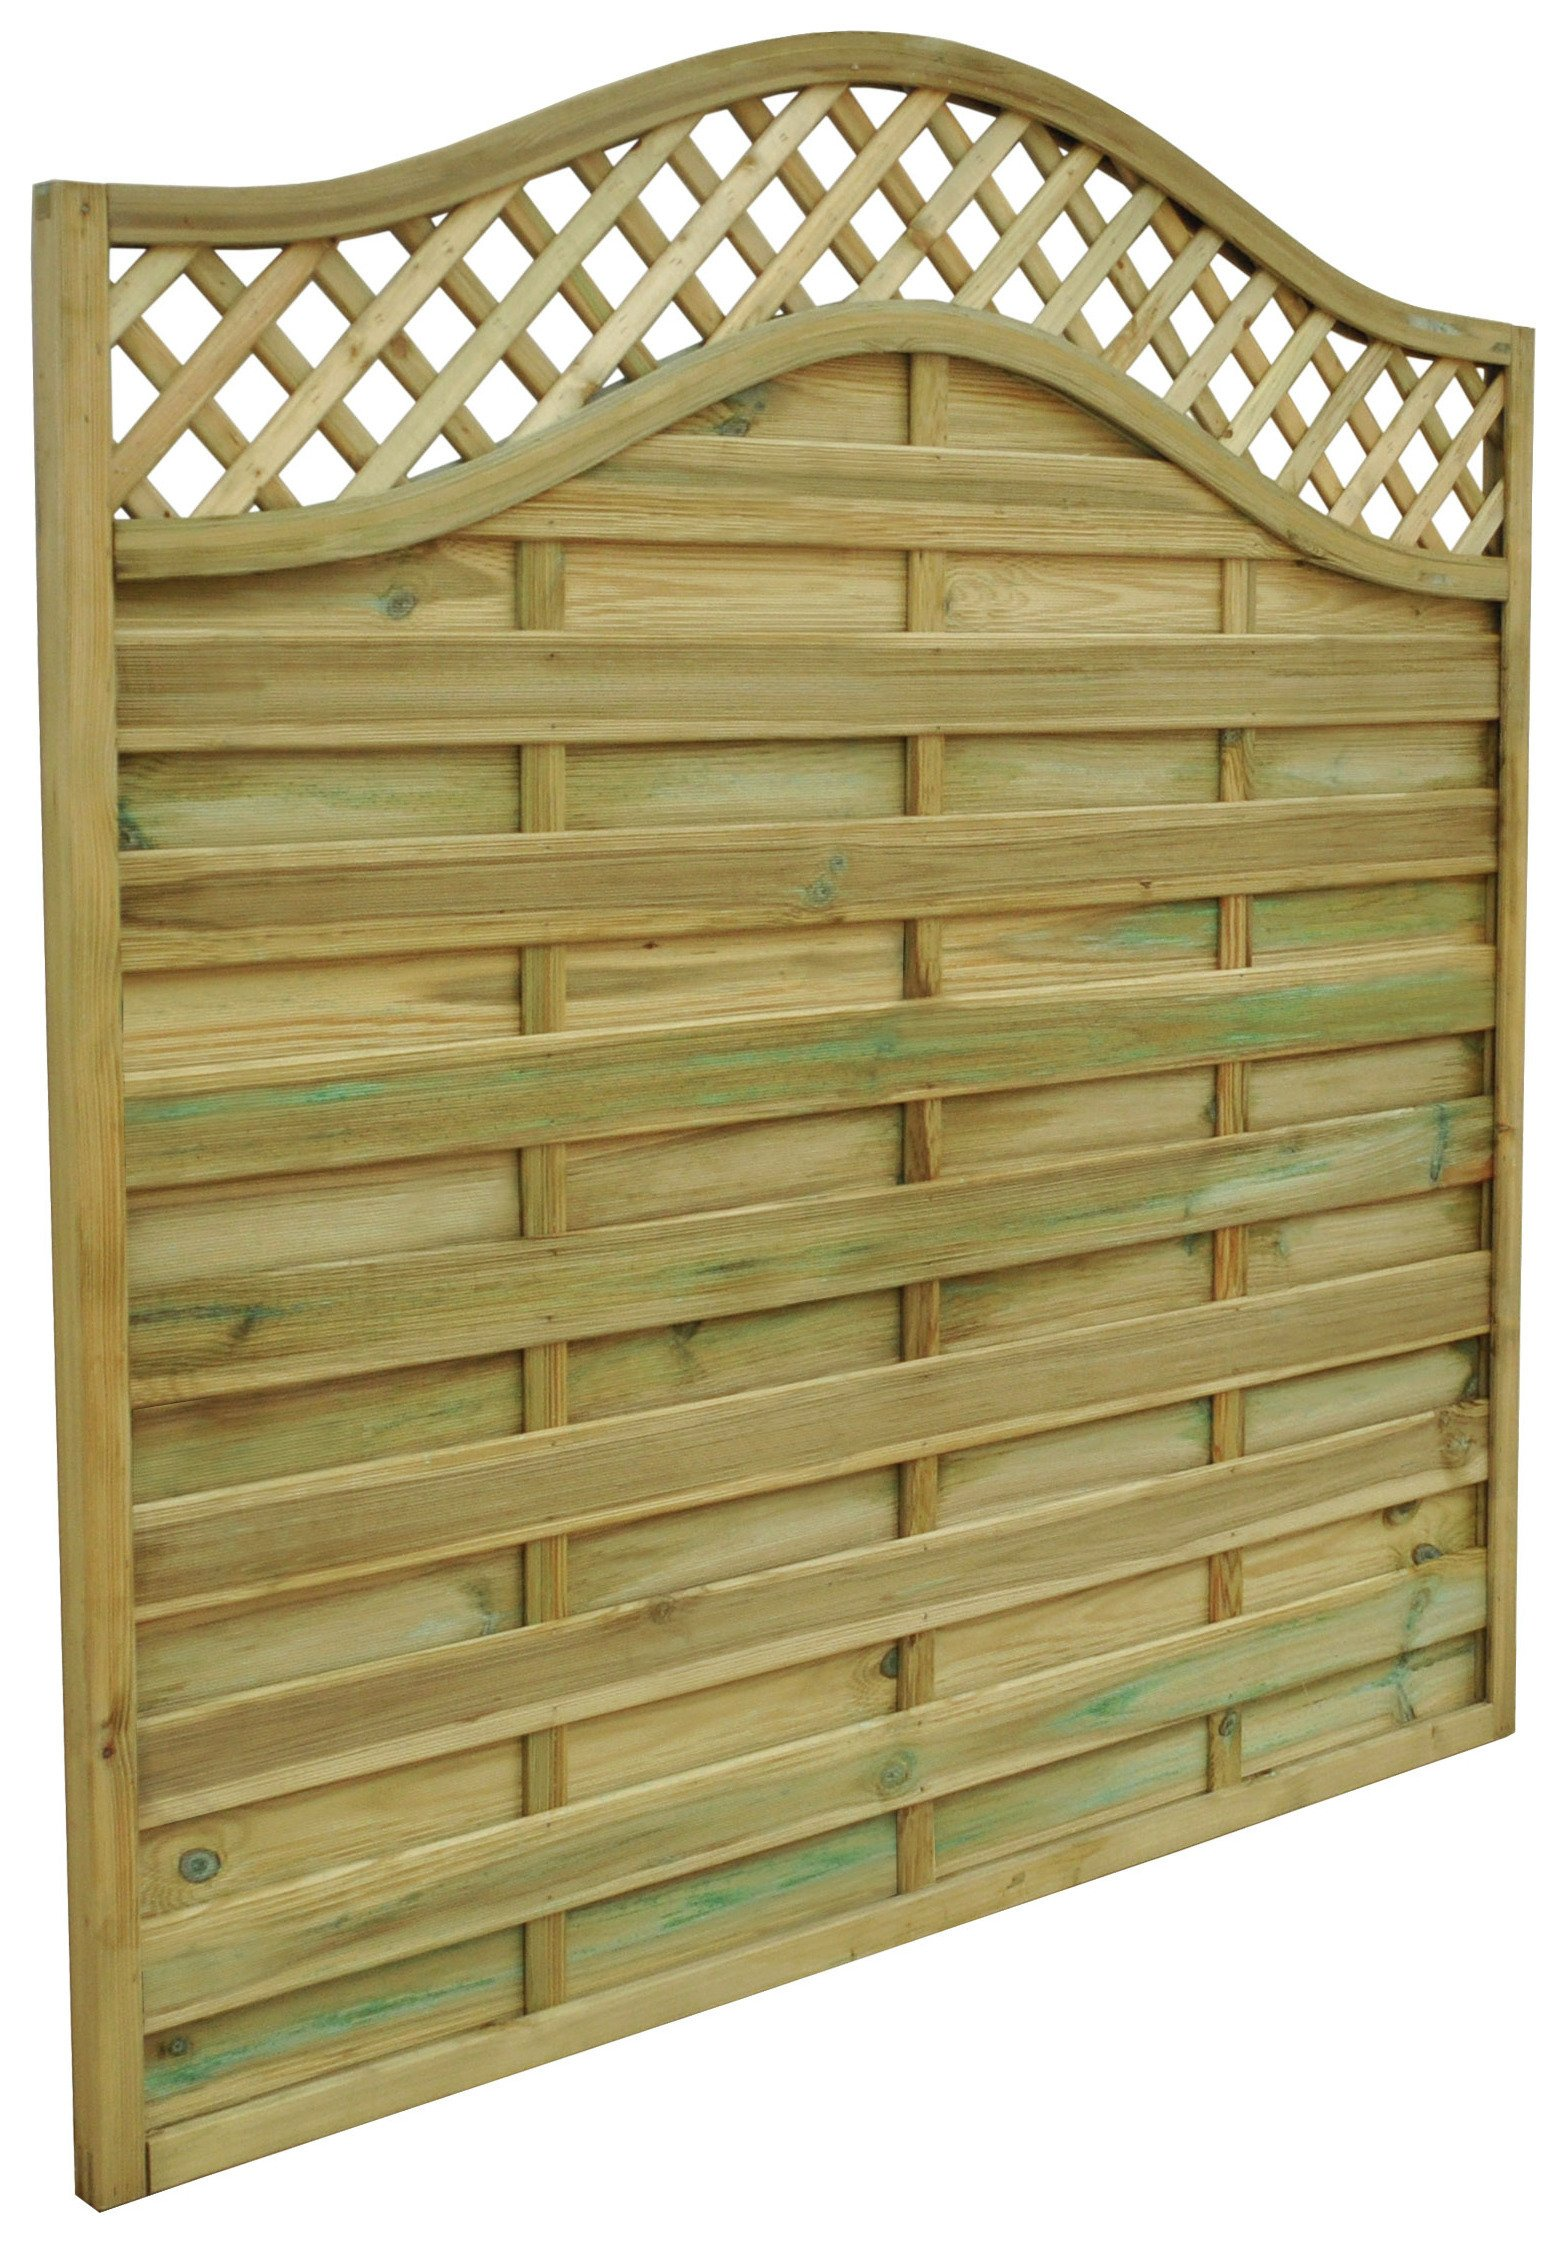 Forest Garden 1.2m Small Prague Fence Panel - Pack of 4. lowest price